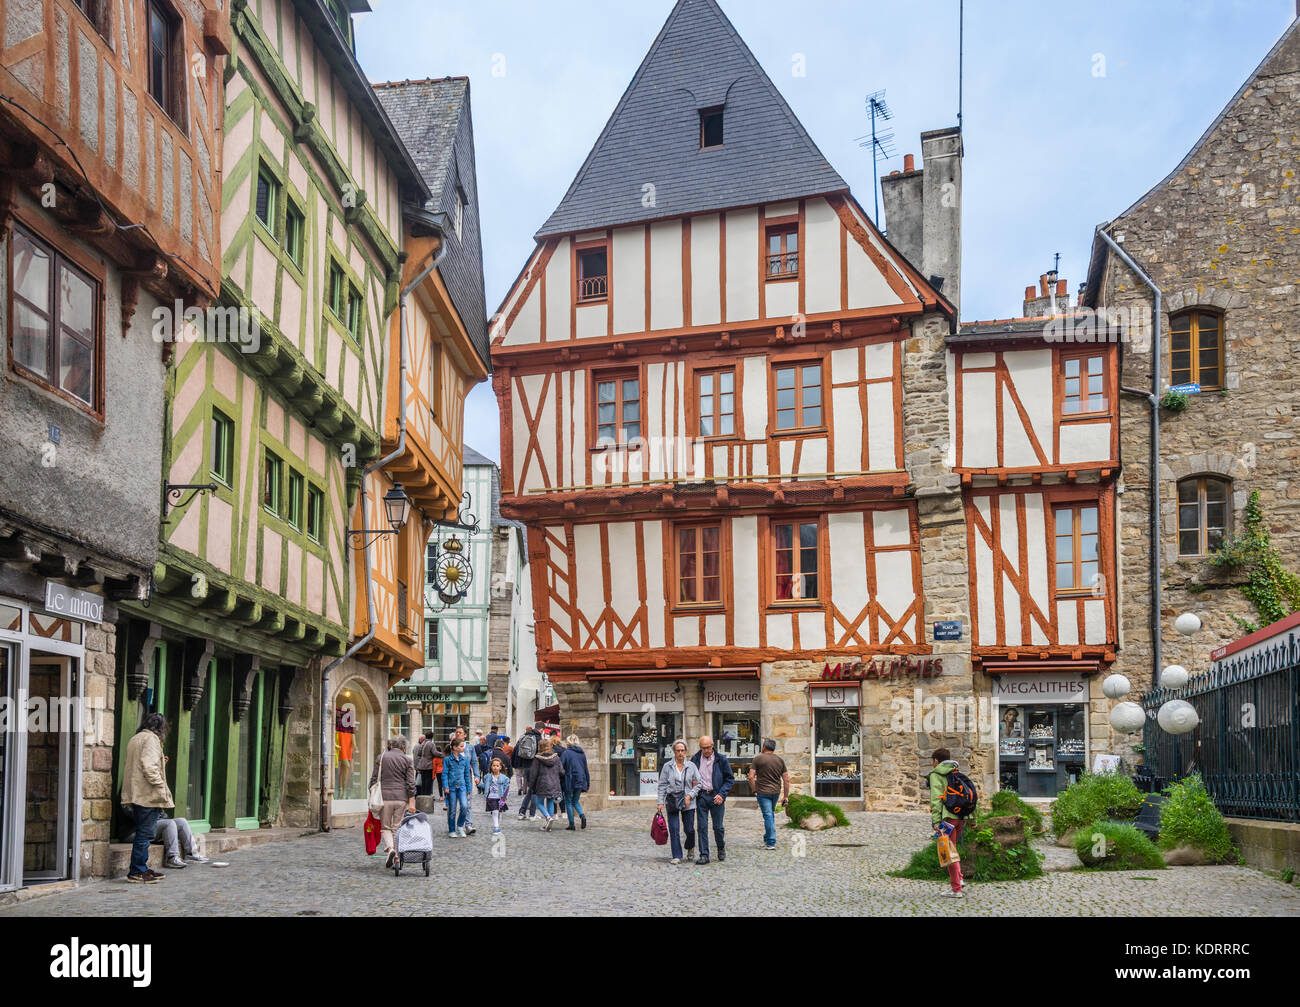 France, Brittany, Morbihan, Vannes, Place Saint-Pierre, medieval timber-framed old town houses next to Vannes Cathedral - Stock Image